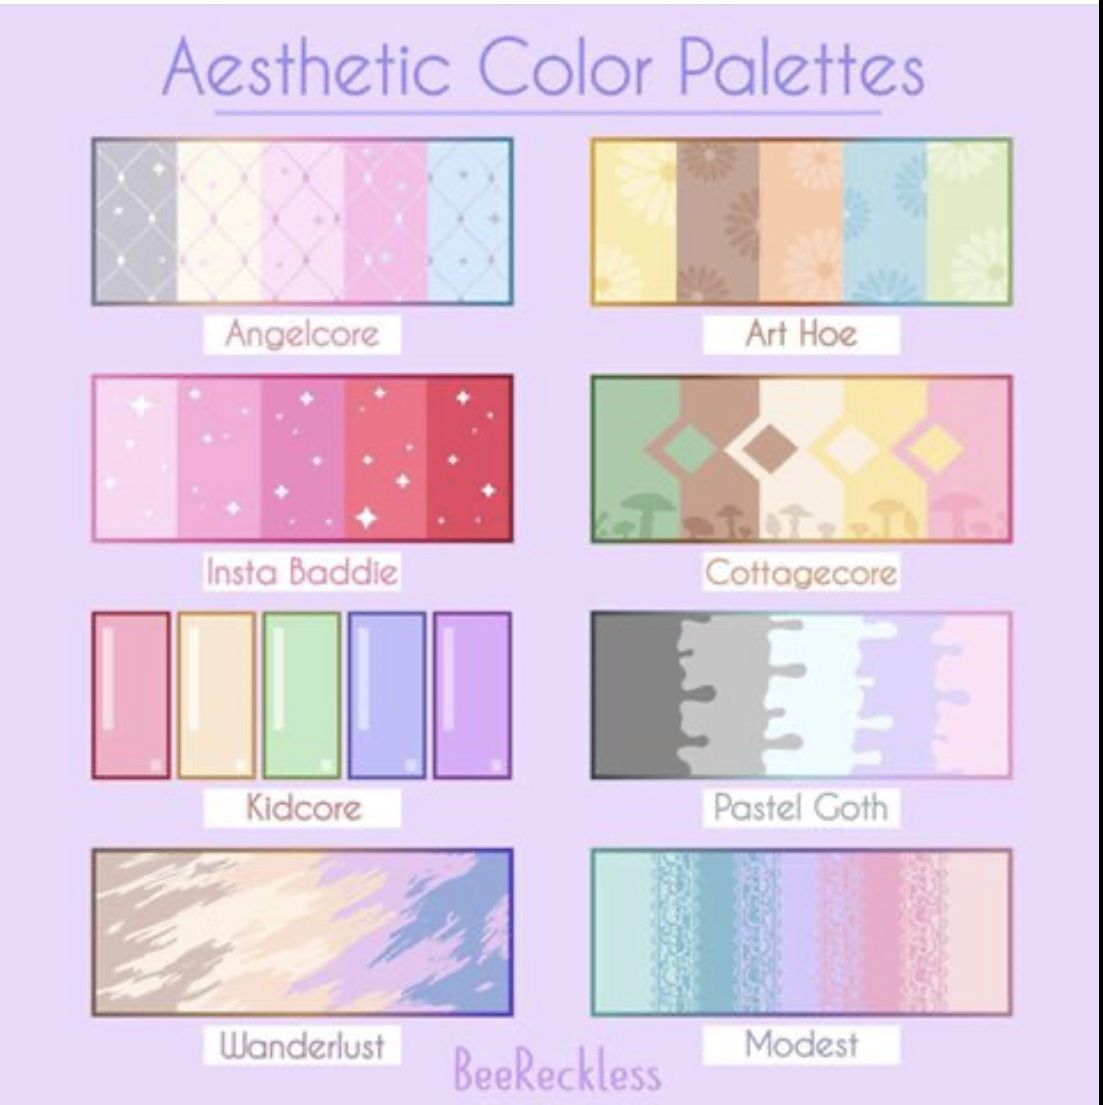 Beereckless Aesthetic Color Palettes In 2020 Color Palette Challenge Aesthetic Colors Palette Art